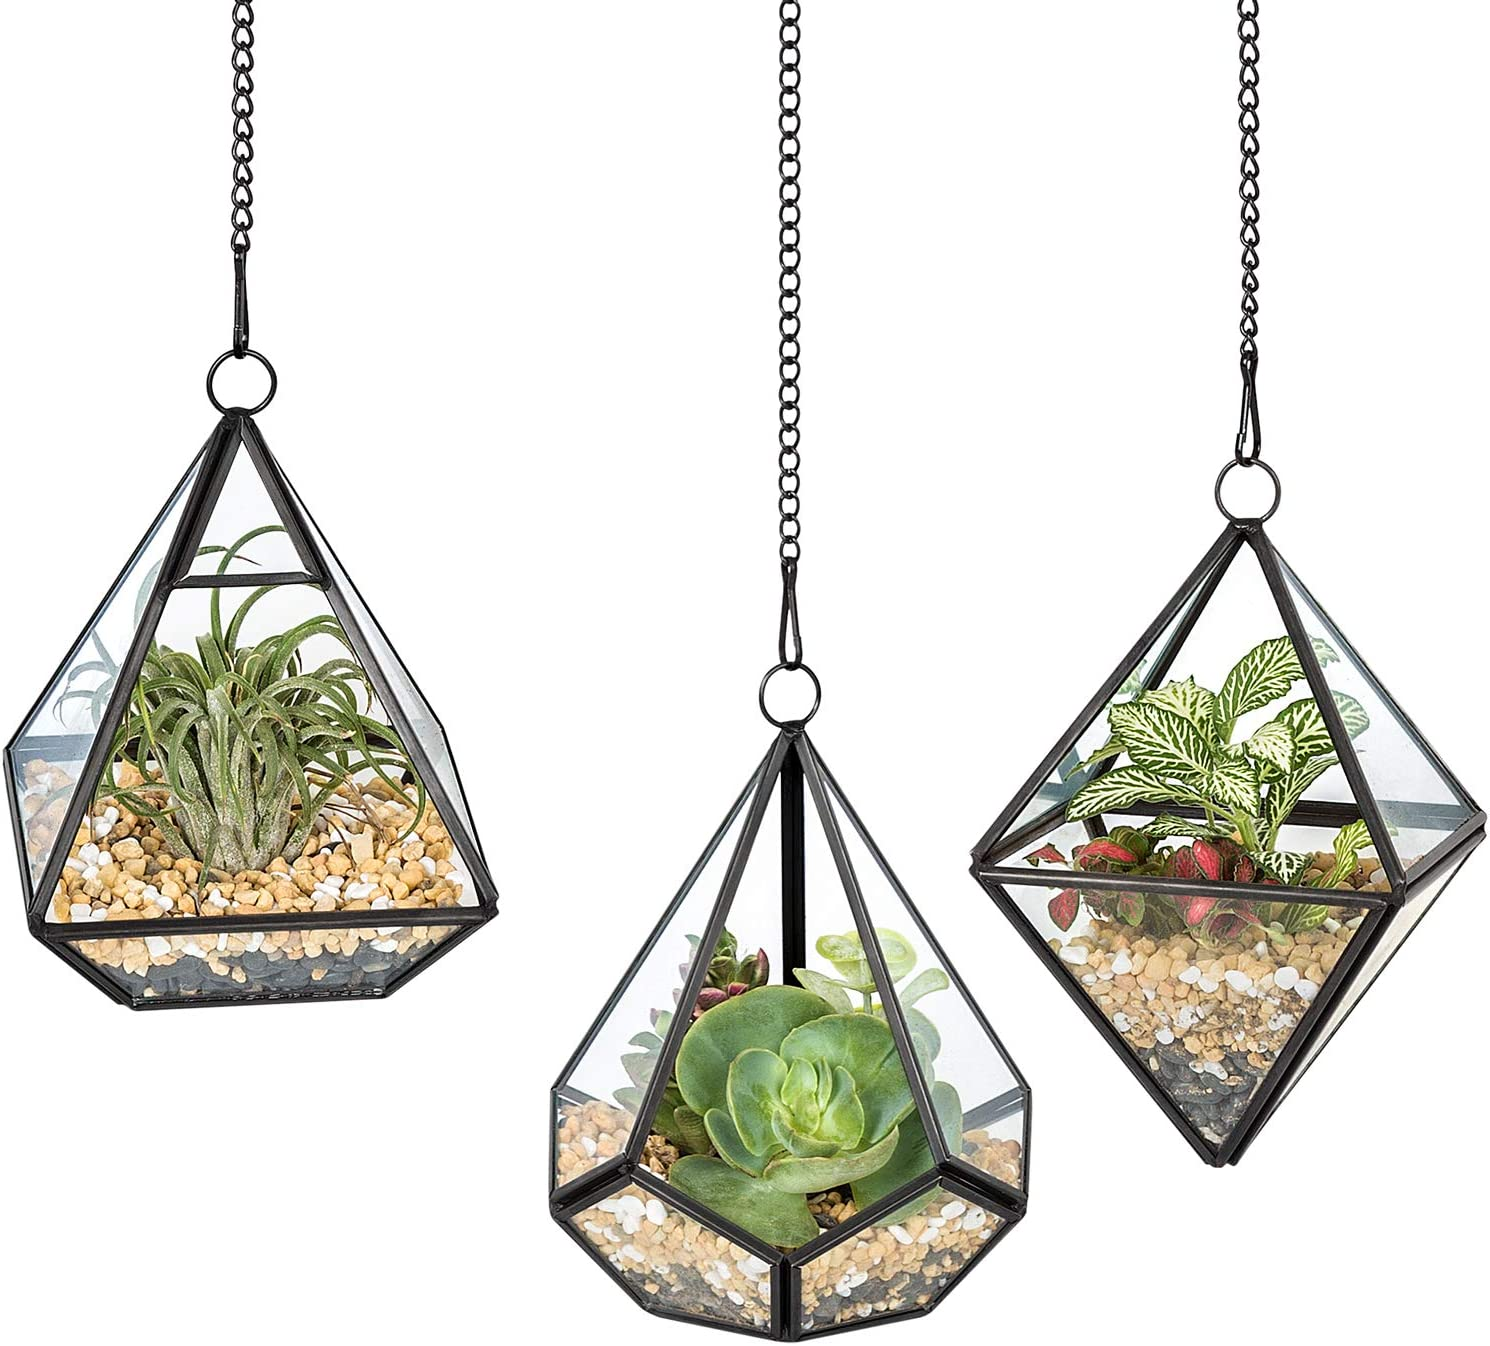 Mkono 3 Pcs Small Hanging Glass Terrarium Geometric Container Vertical Modern Planter Windowsill Decor DIY Display Box Centerpiece Gift for Succulent Fern Moss Air Plants Miniature Fairy Garden, Black